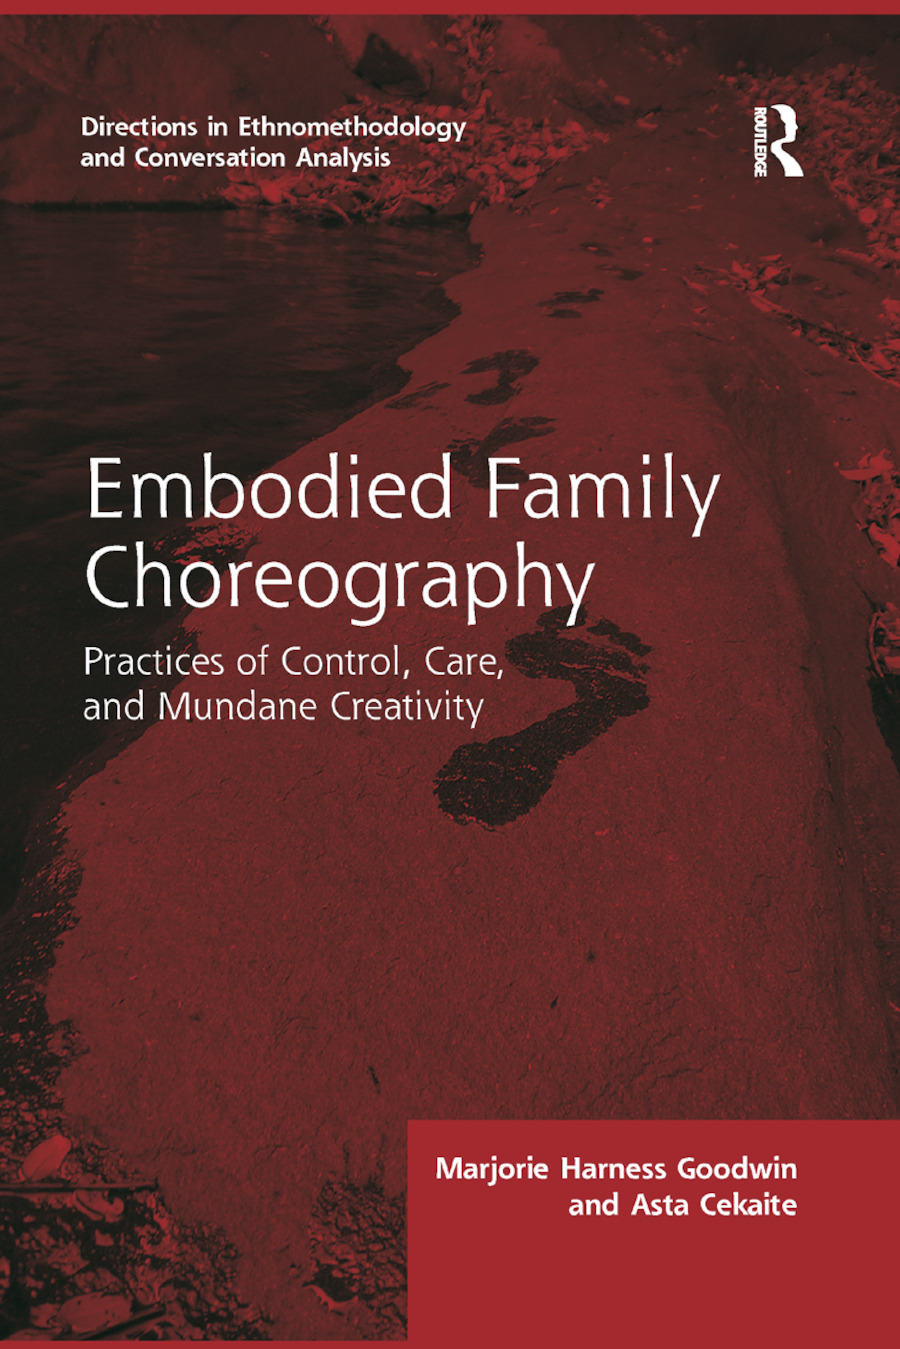 Embodied Family Choreography: Practices of Control, Care, and Mundane Creativity book cover